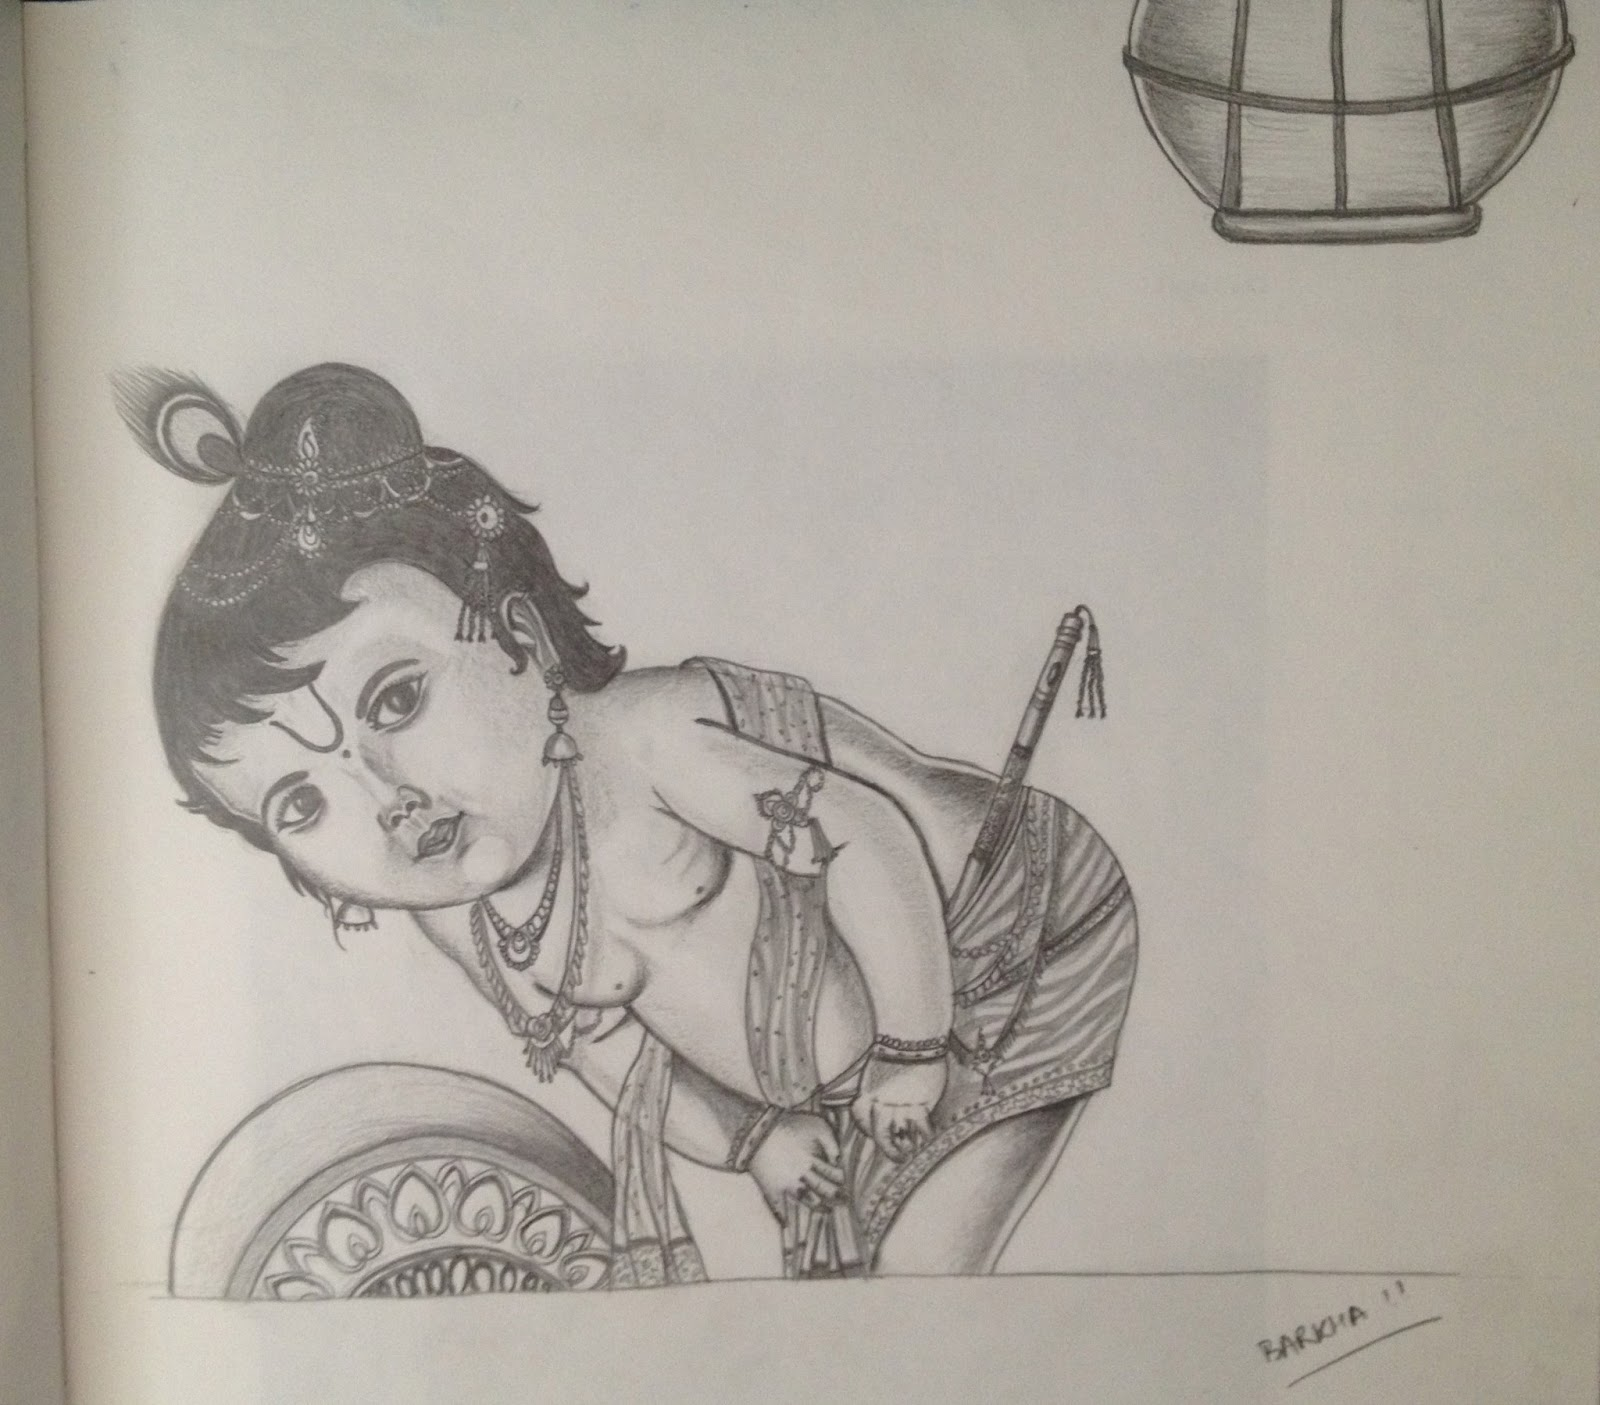 Pencil sketch of krishna baal leela